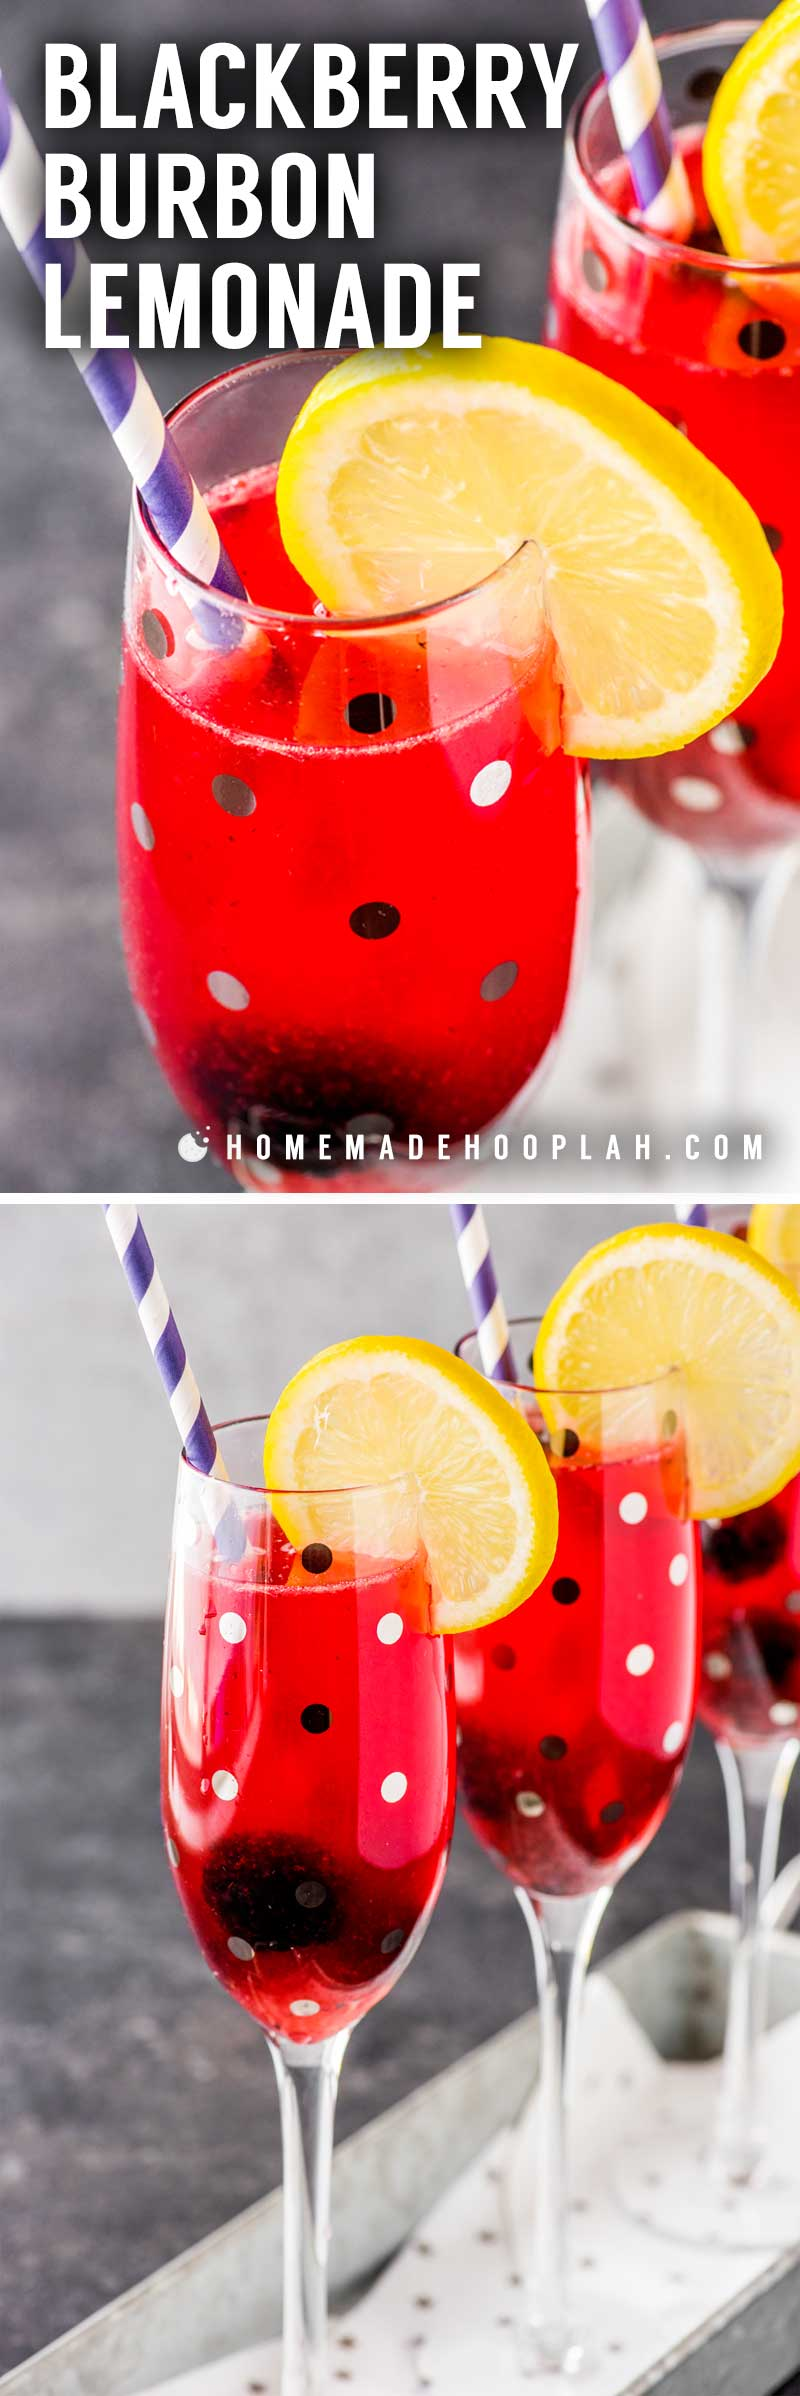 Blackberry Bourbon Lemonade! This blackberry bourbon lemonade takes the taste of lemonade and spikes it with a bite of bourbon and a sweet homemade blackberry syrup. It's perfect for cooling down on hot summer evenings or just a refreshing change from classic lemonade. | HomemadeHooplah.com